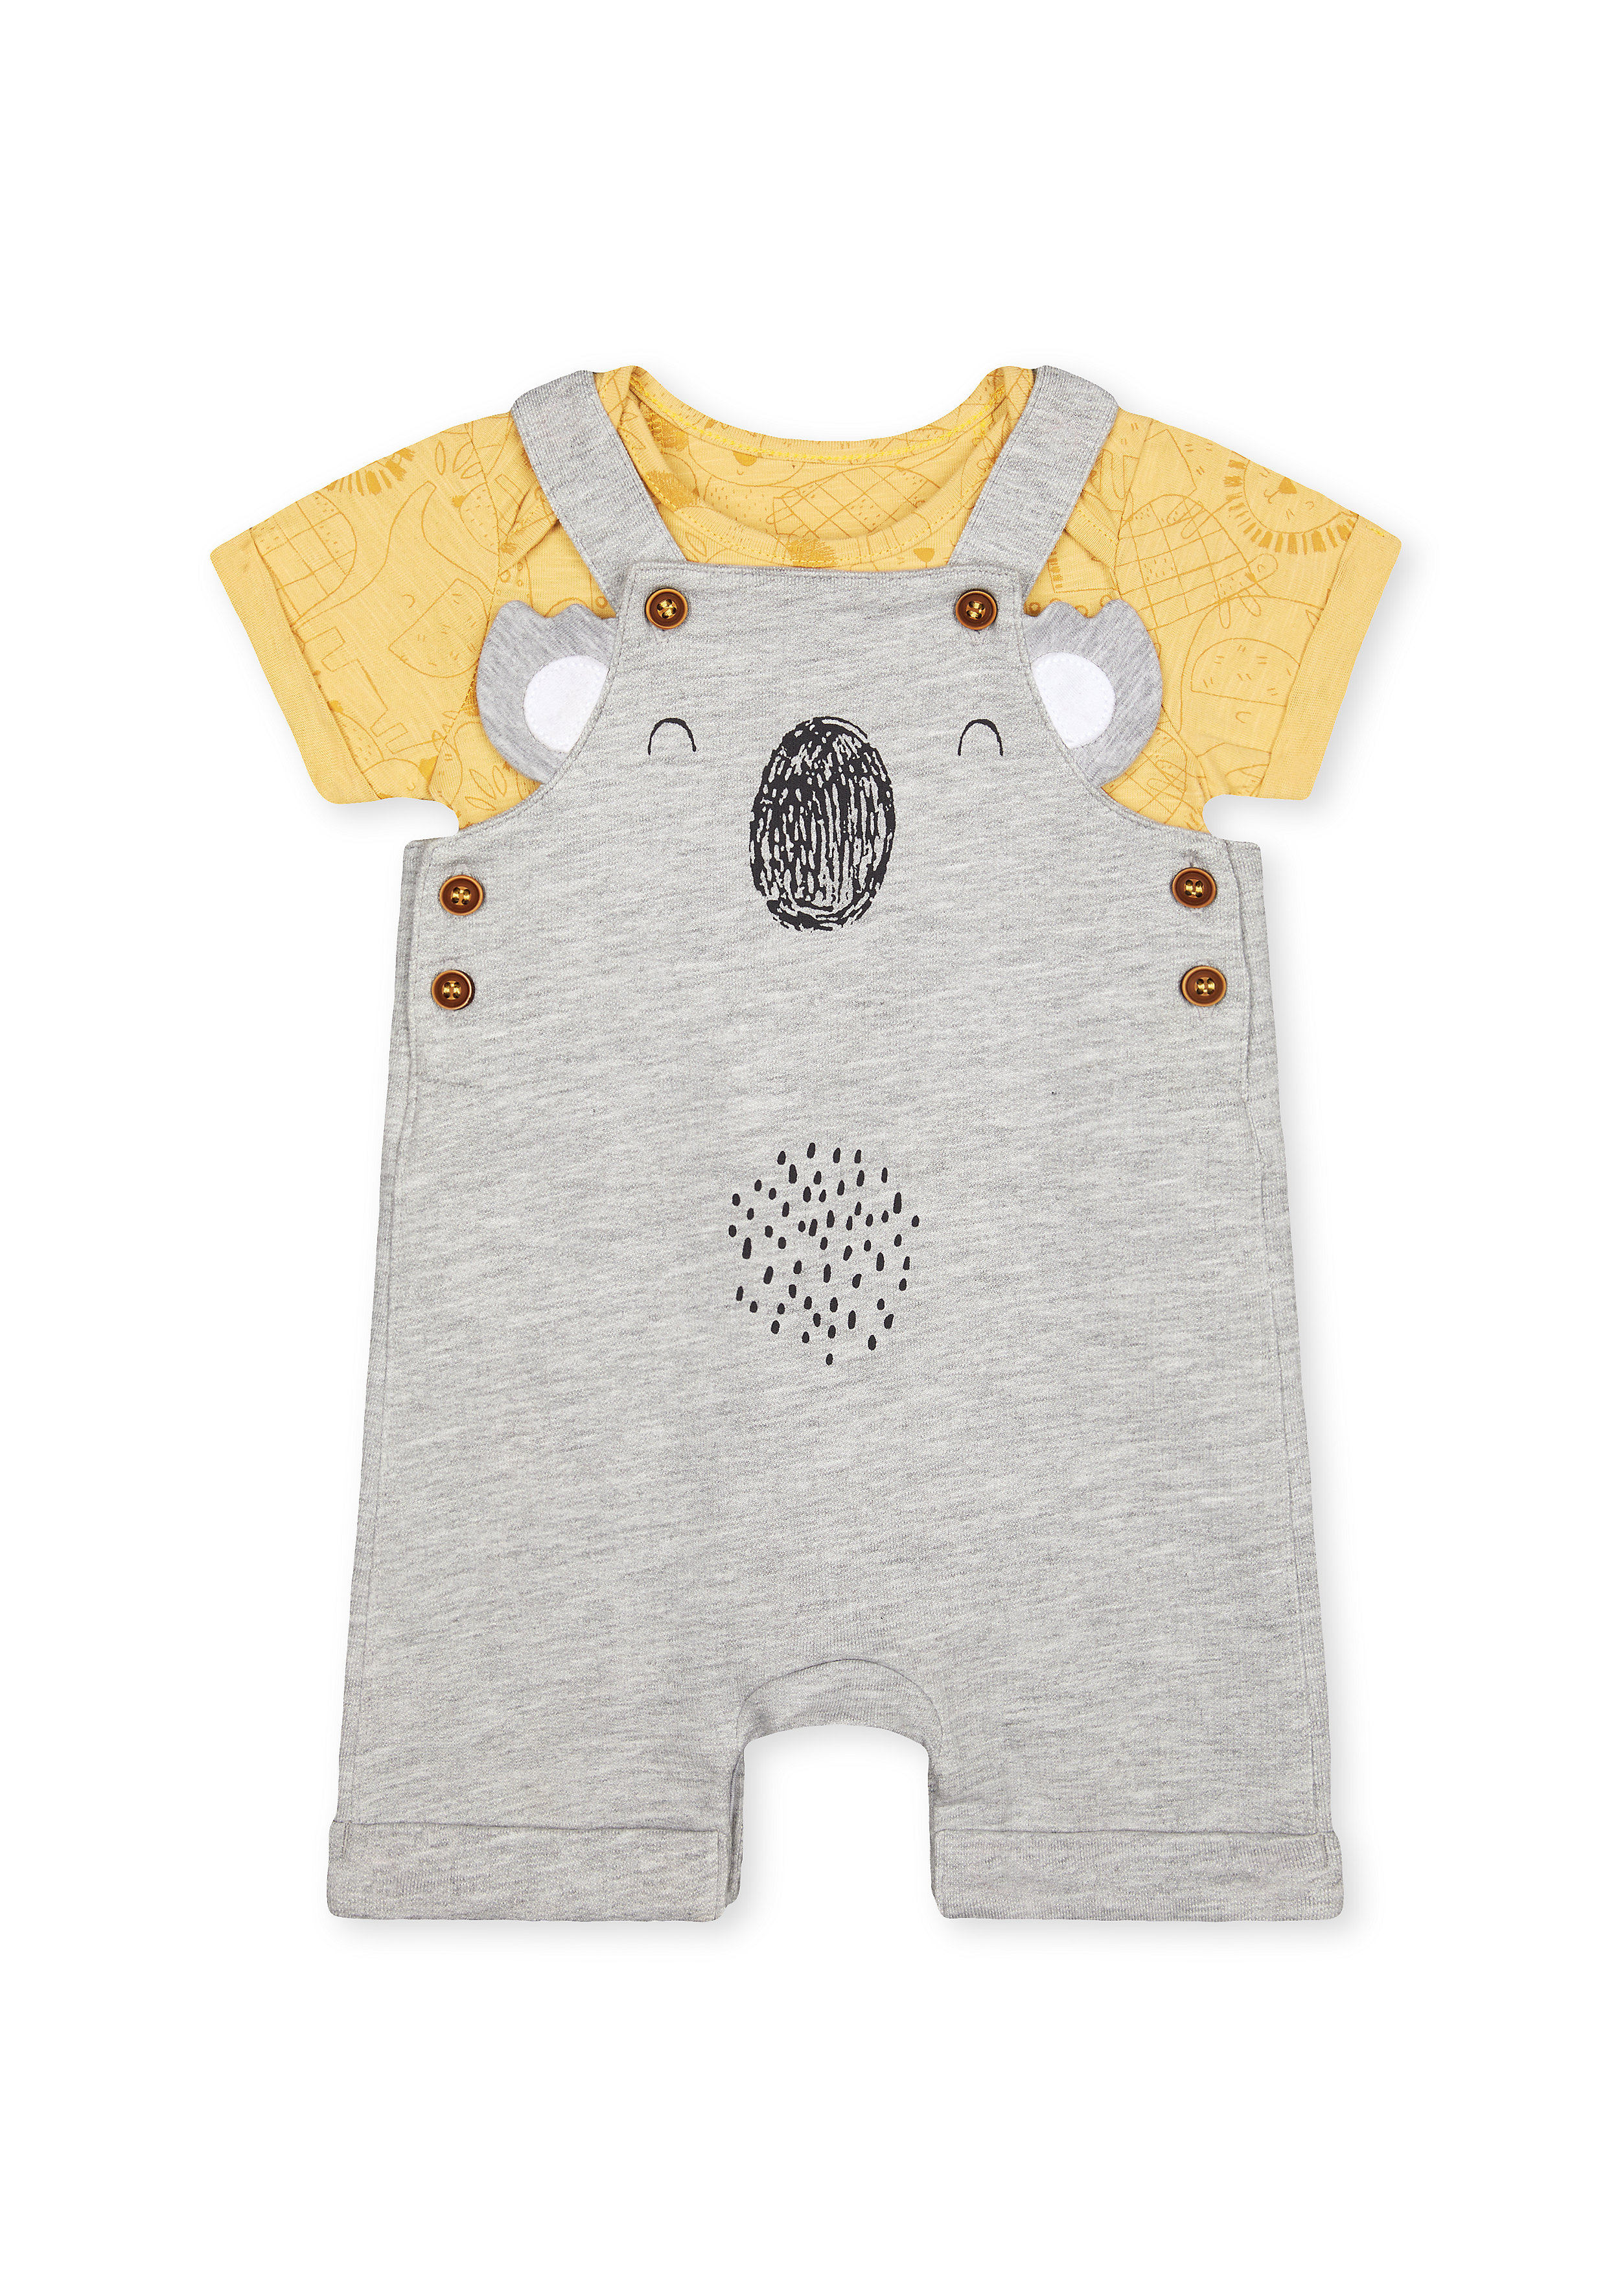 Mothercare | Boys Half Sleeves Dungaree Sets  - Pack Of 2 - Grey